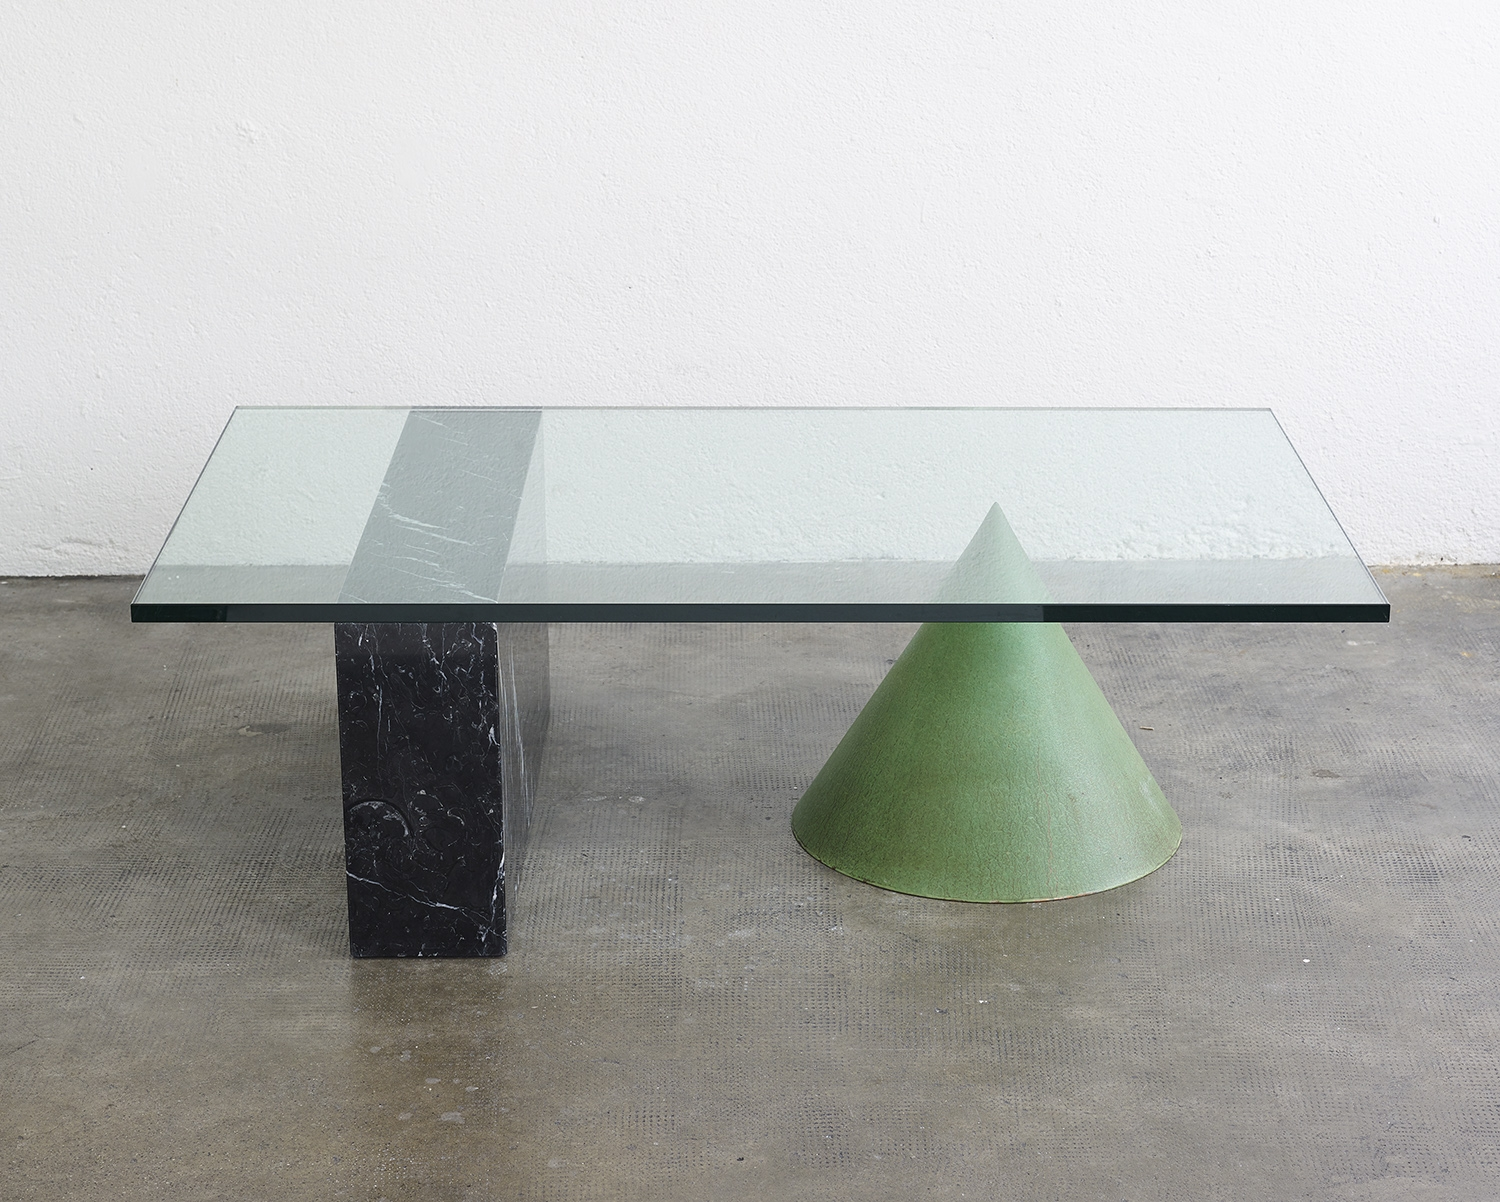 kono-coffee-table-by-massimo-and-lella-vignelli-1983-image-02